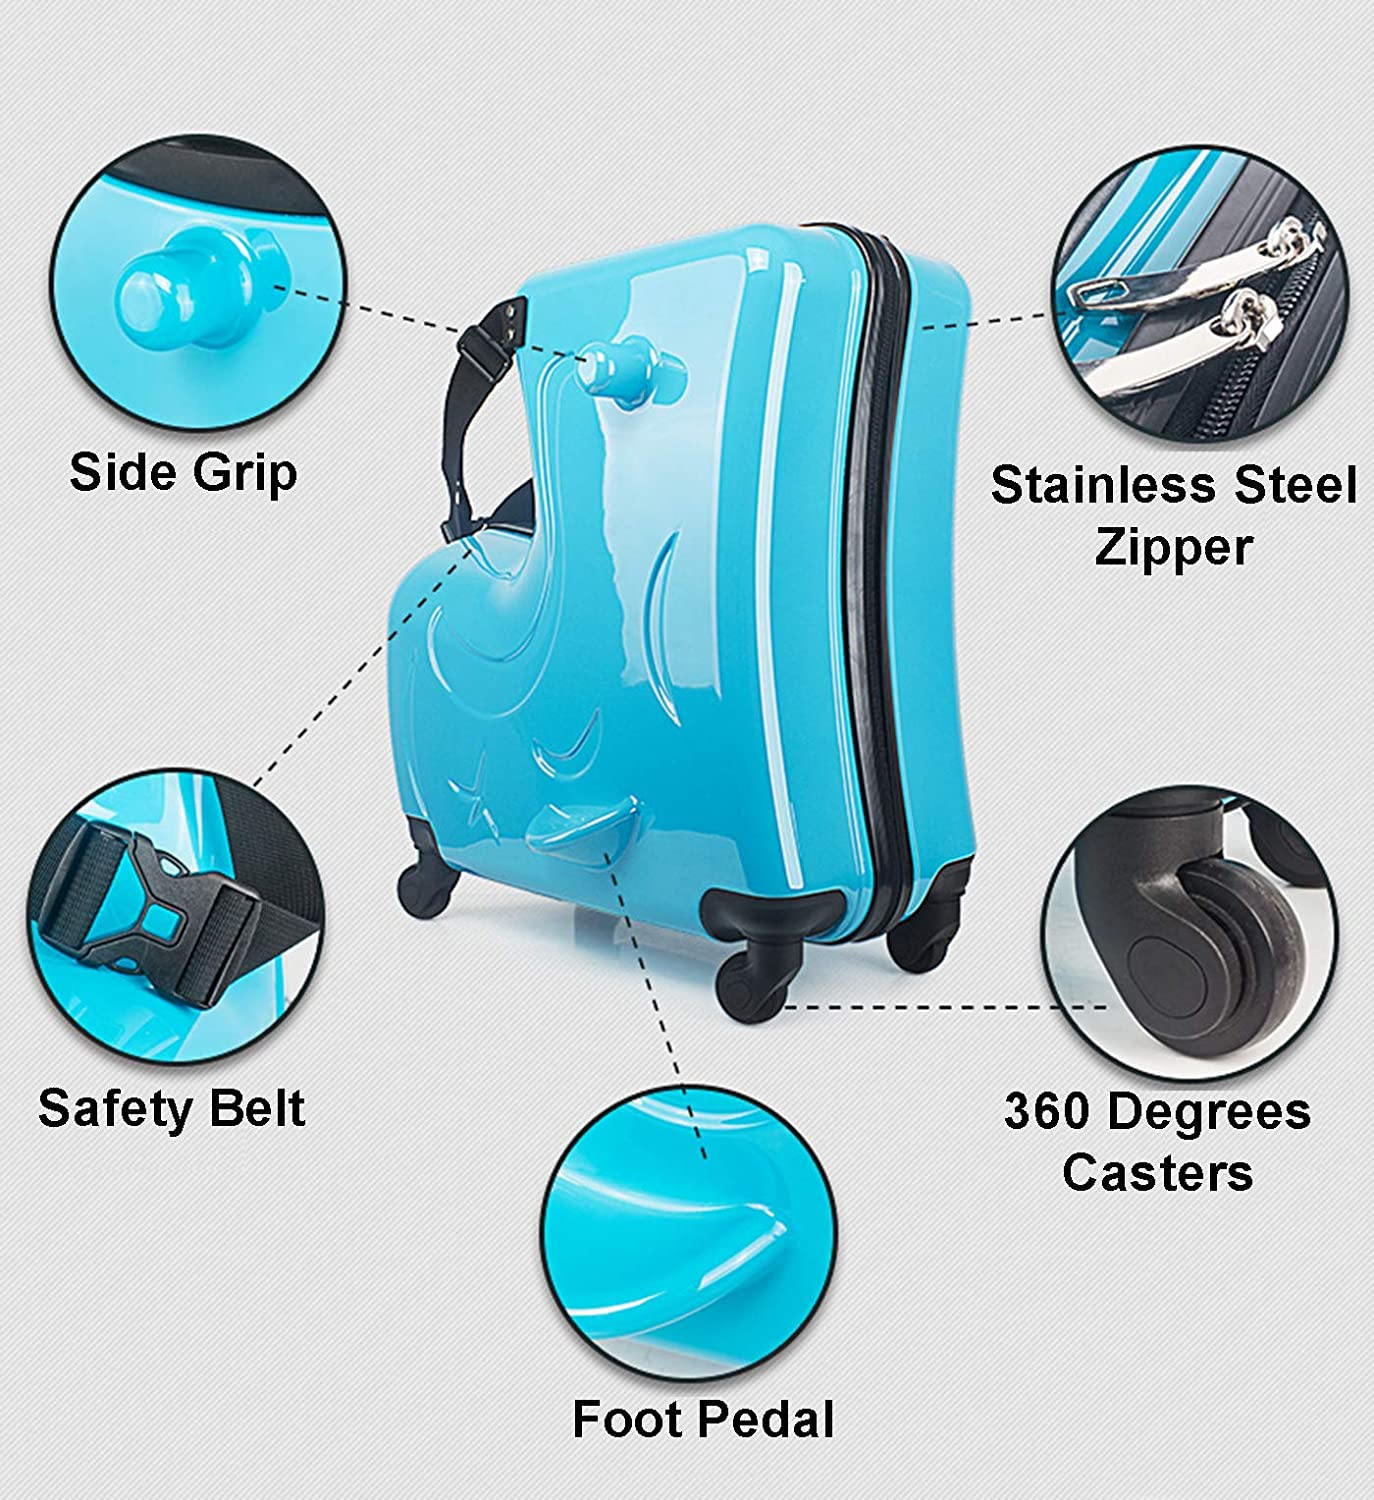 AOWEILA Luggage-Ride On Suitcase Unisex Ride Roll-Functional Suitcase Fashion Style Travel 20 inch